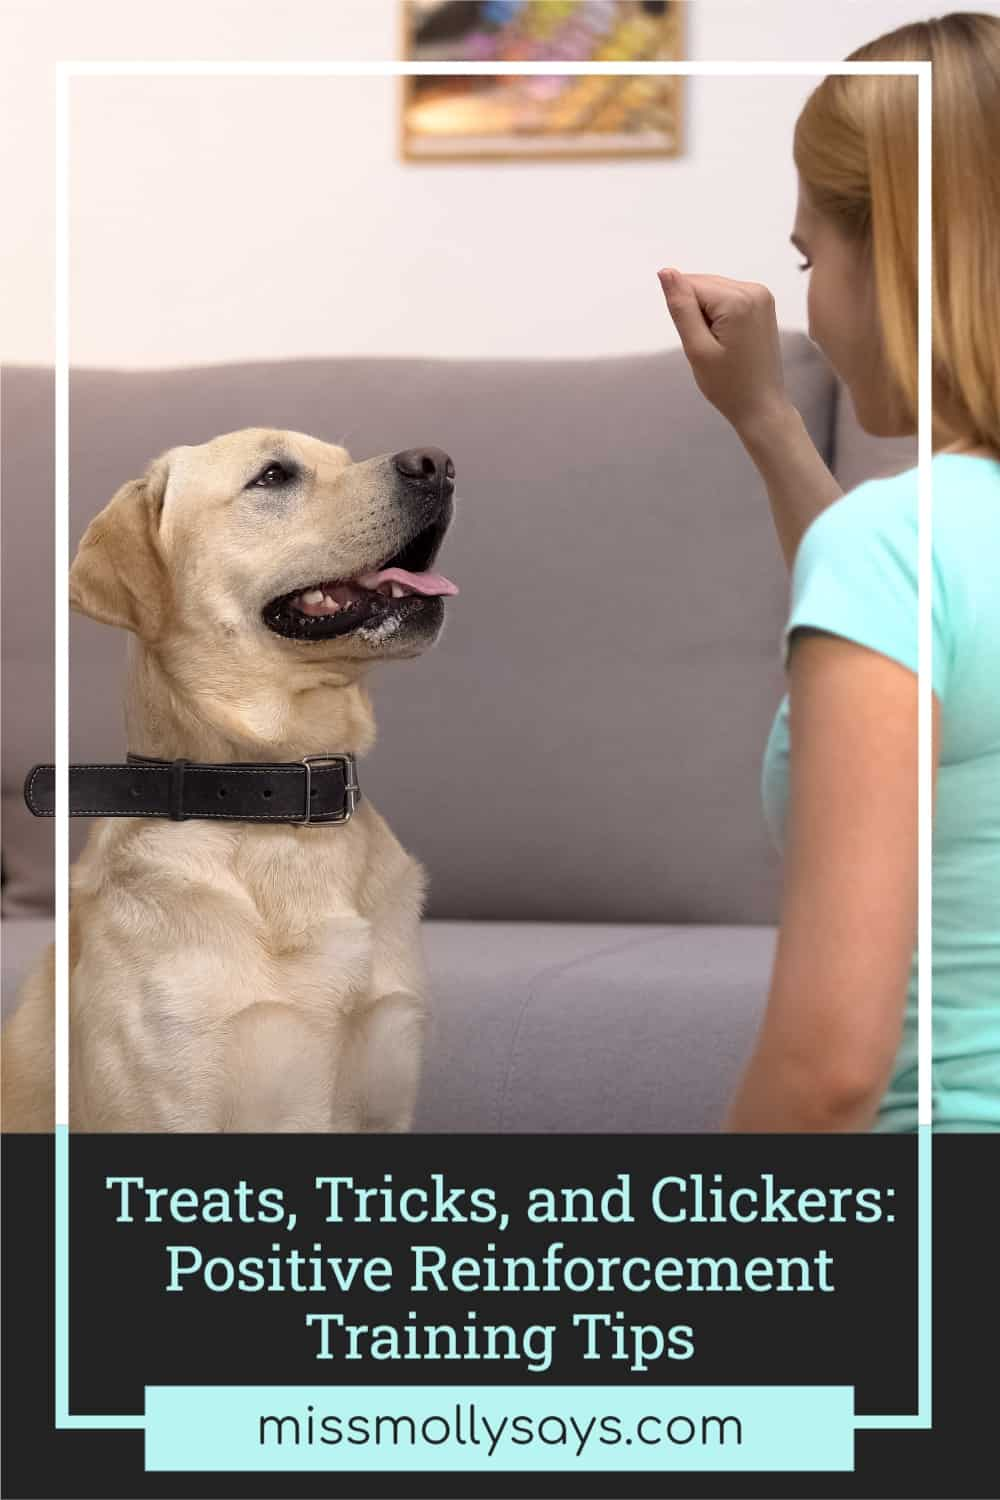 Treats, Tricks, and Clickers: Positive Reinforcement Training Tips